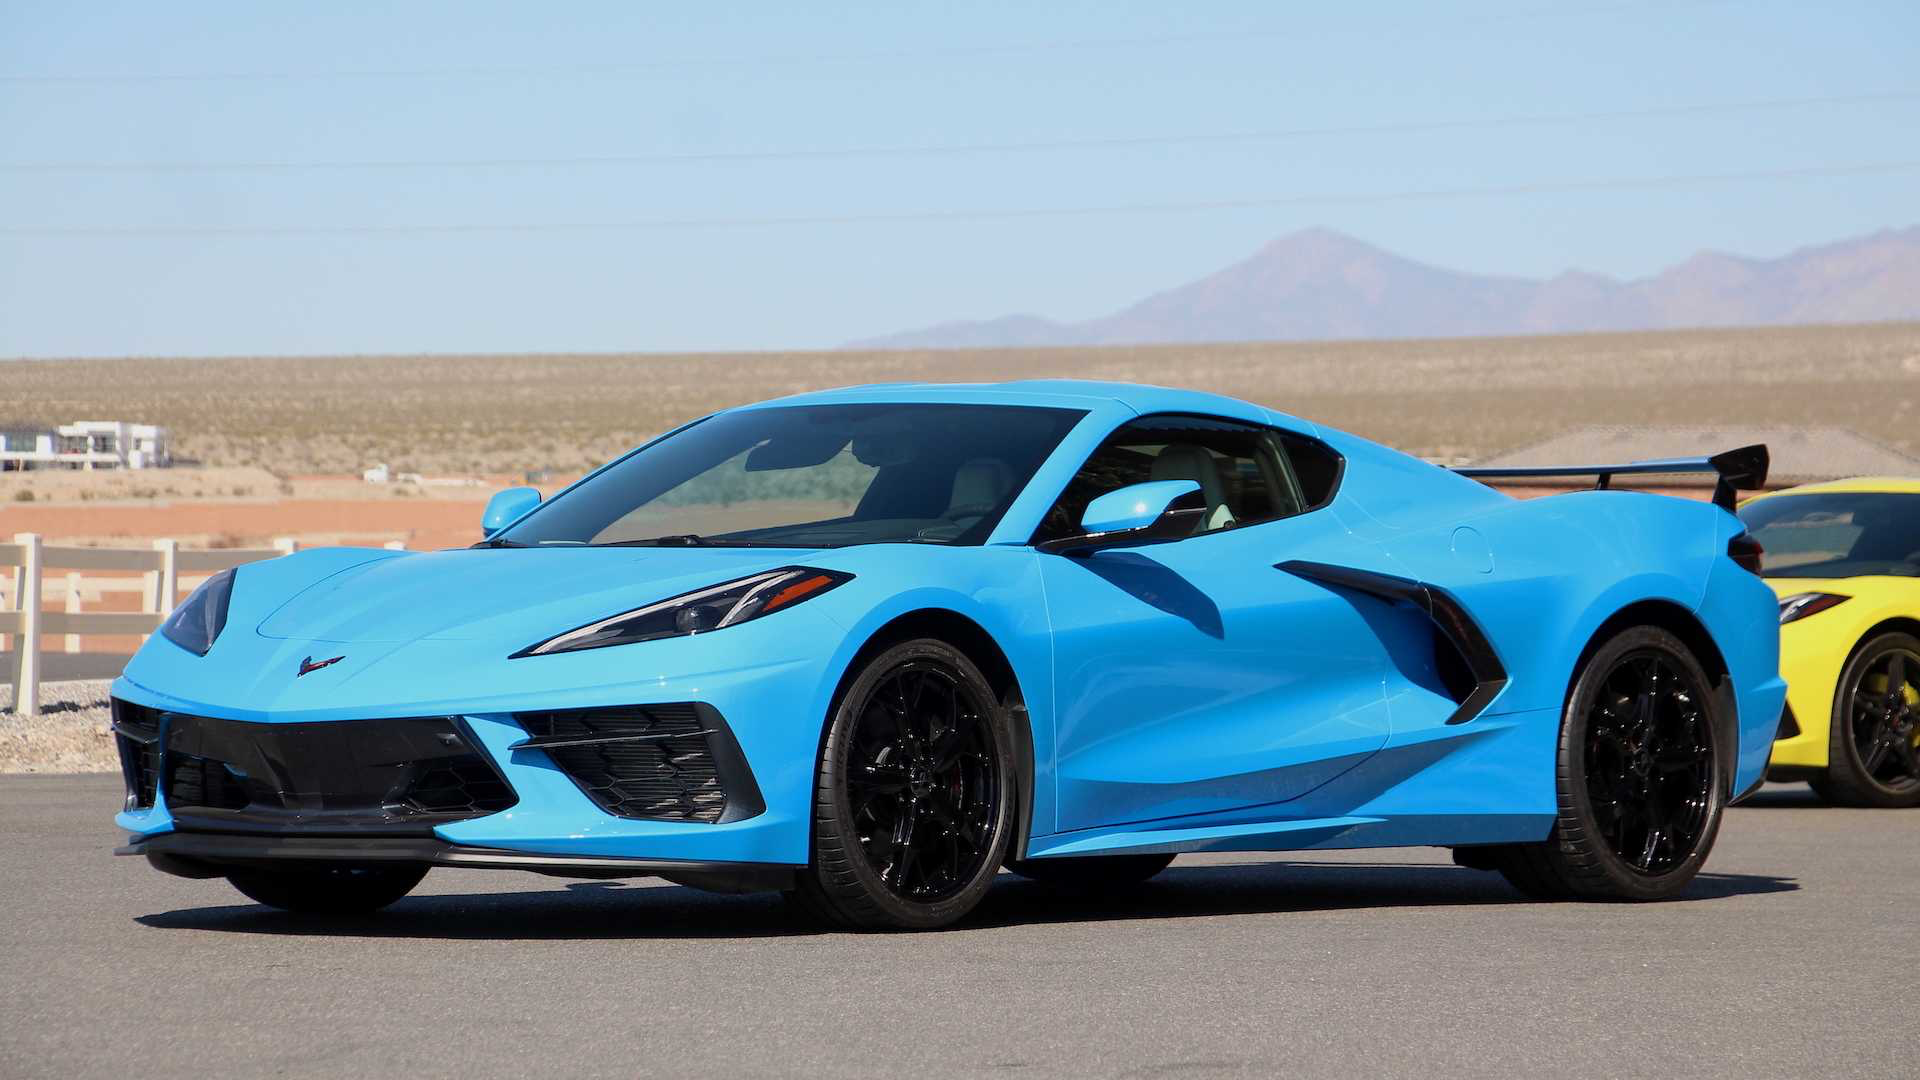 5 Of The Best Sports Cars That Were Updated In 2020 (5 That Disappointed)